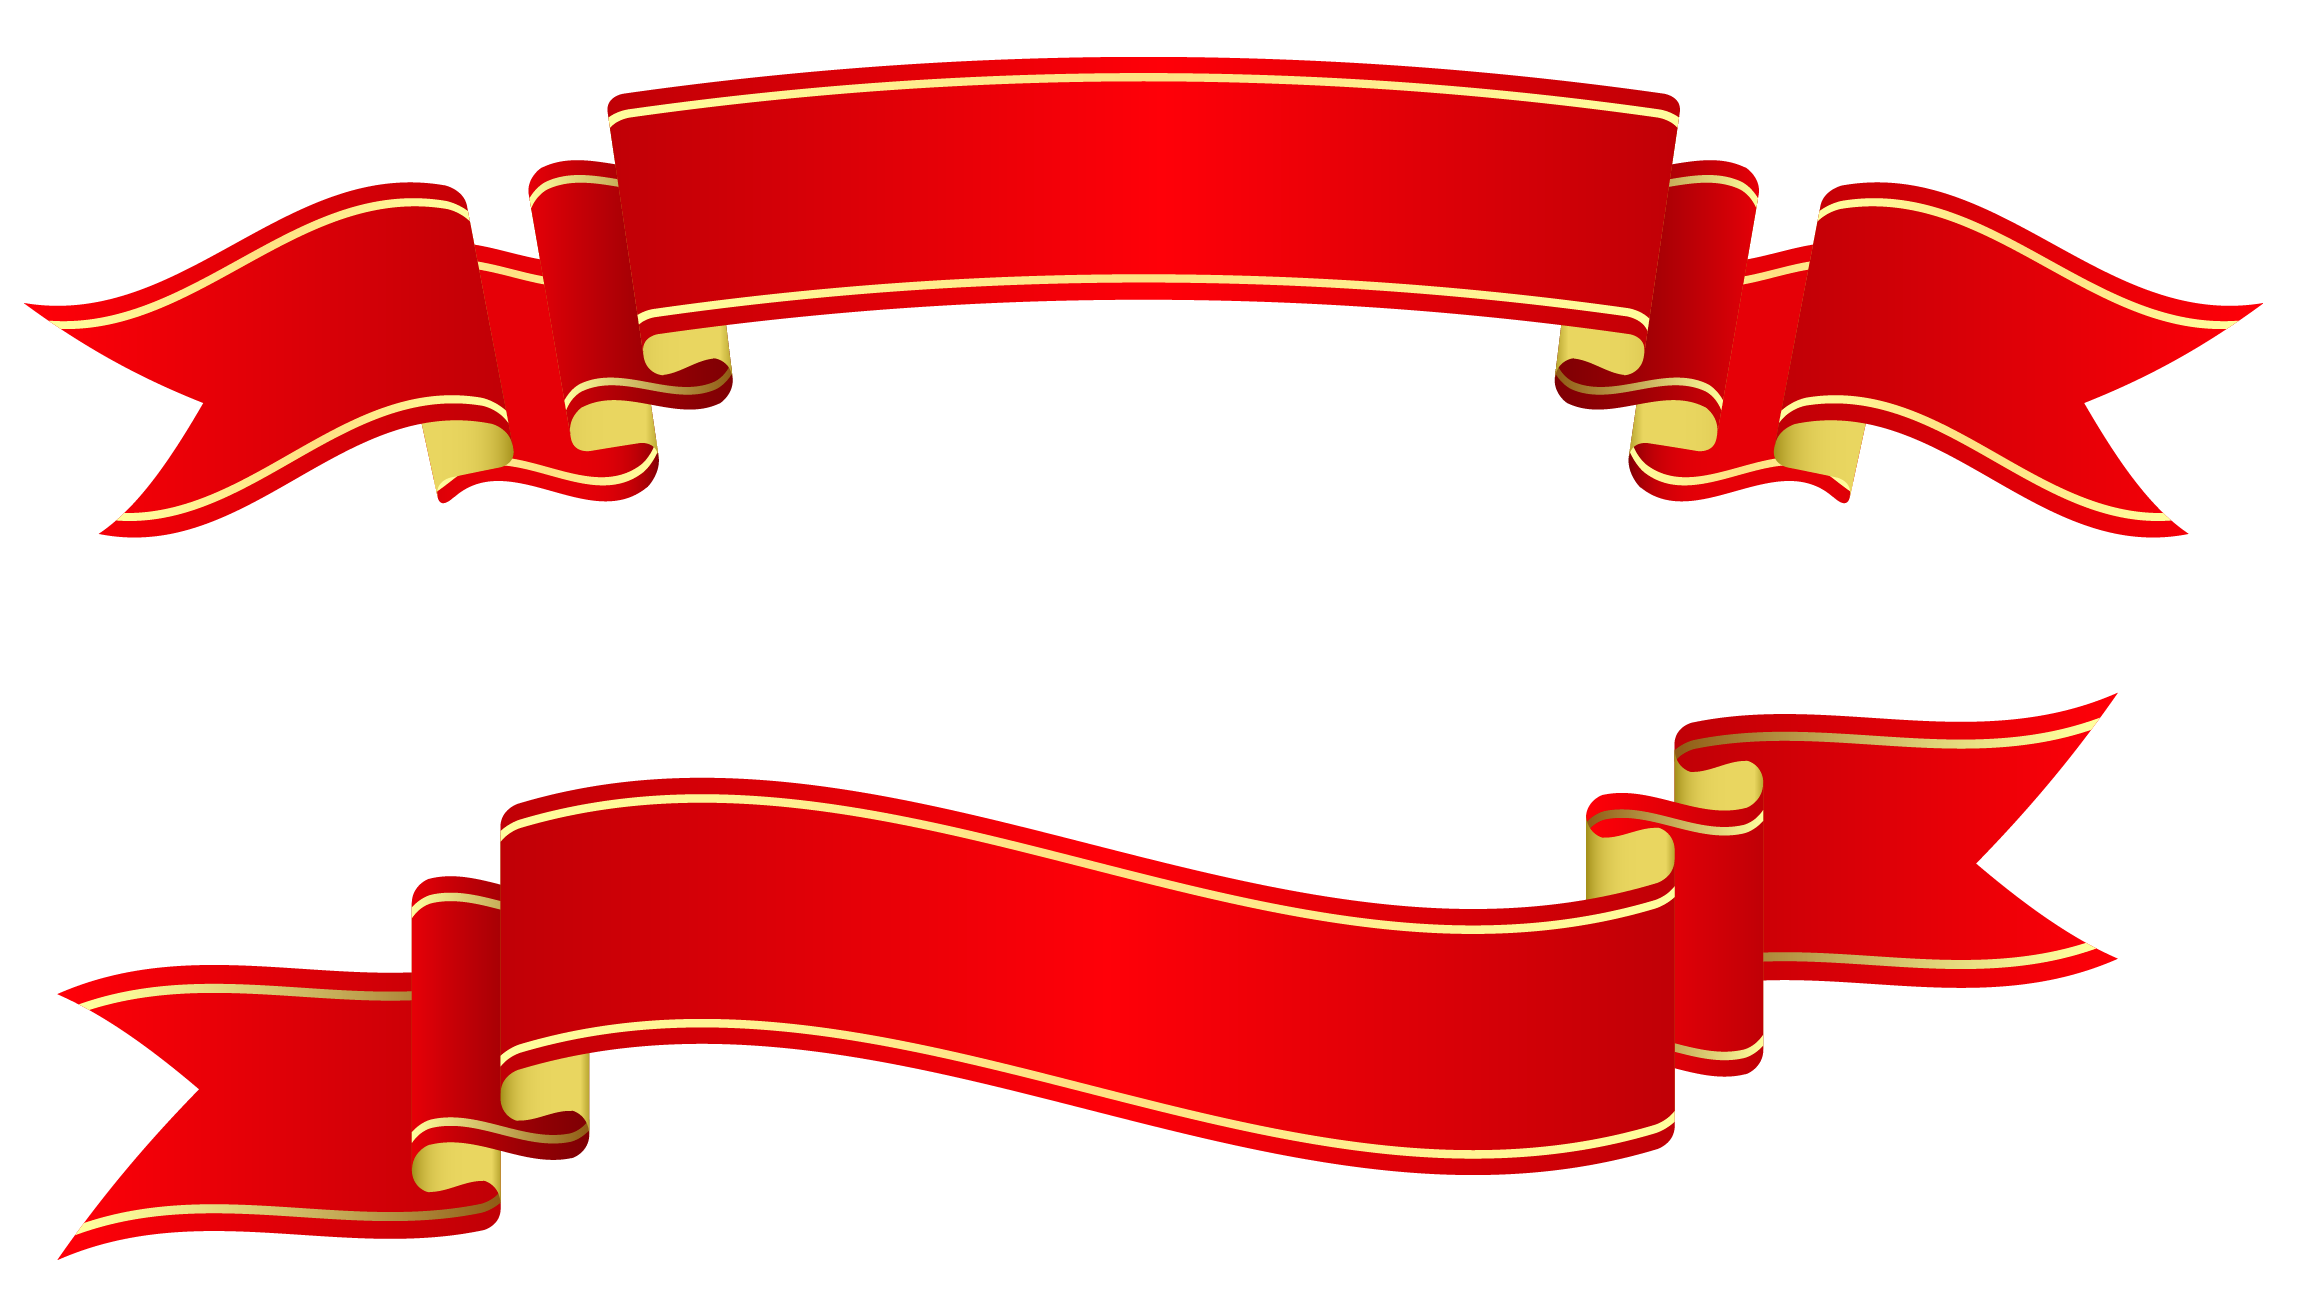 Red ribbon banner png. Adhesive tape clip art